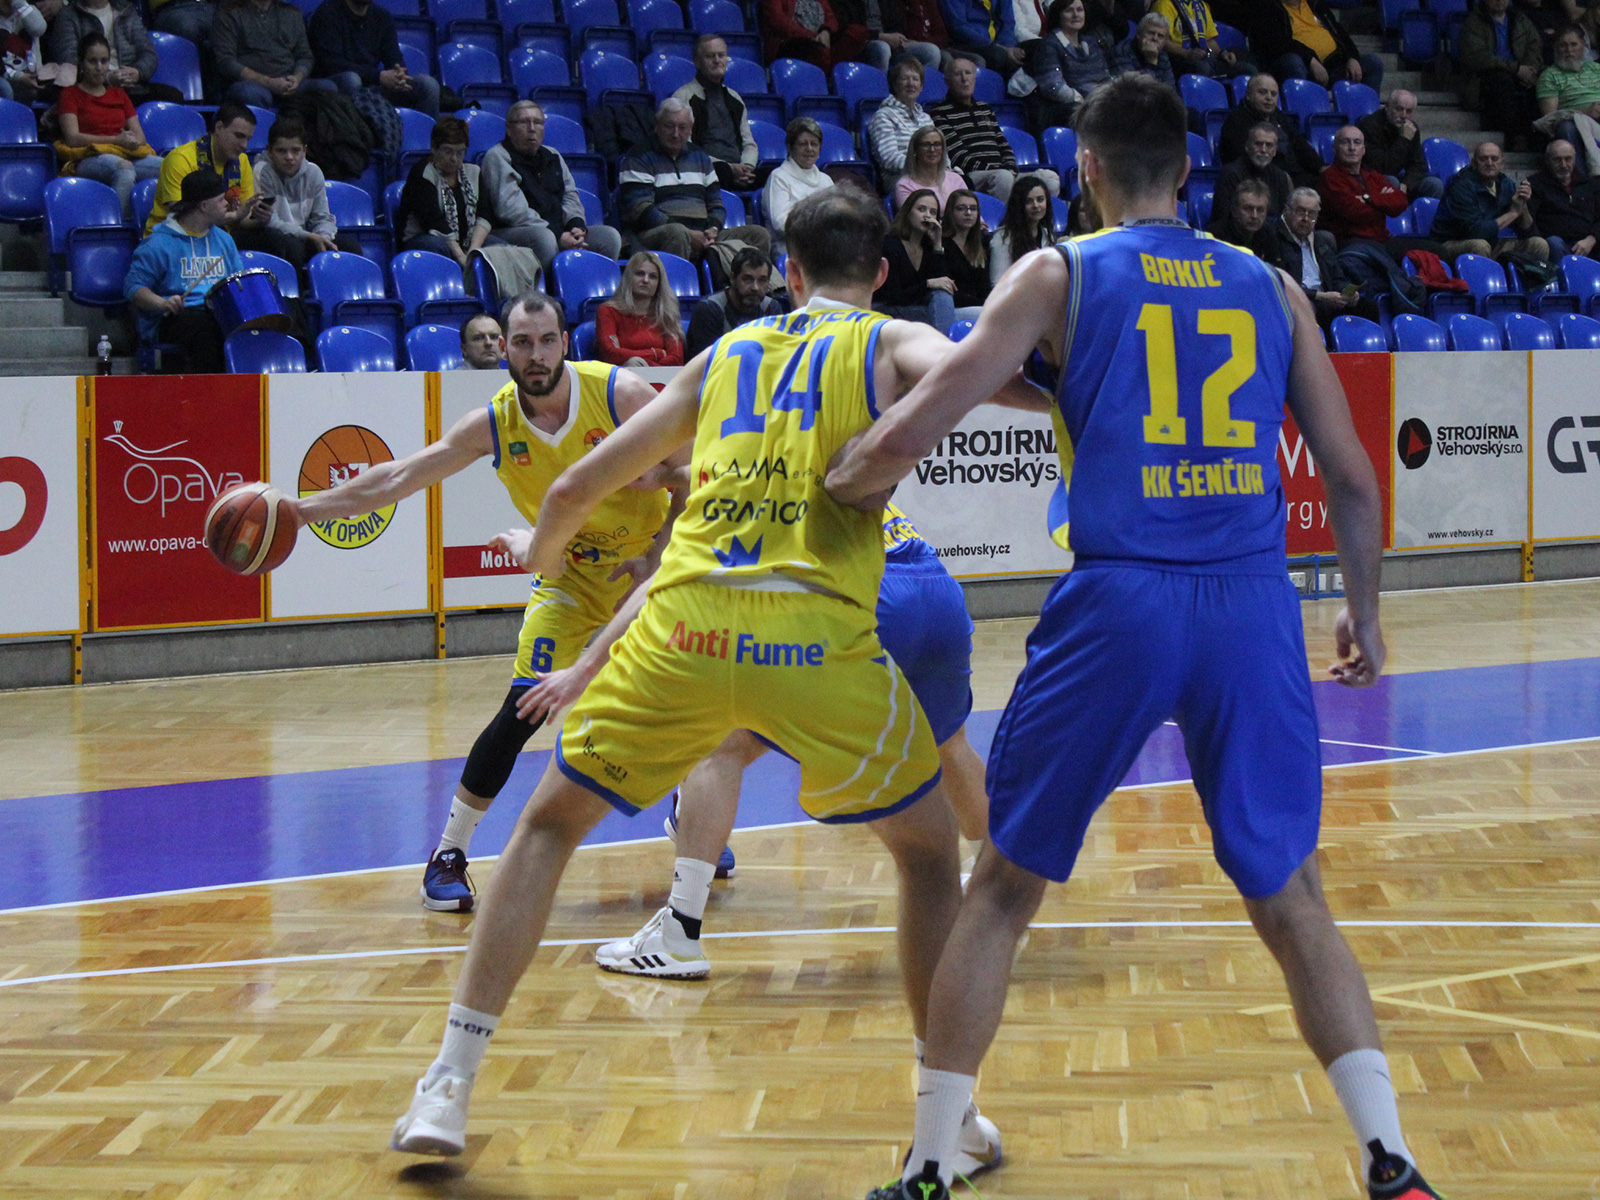 Opava finishes on top of Group C